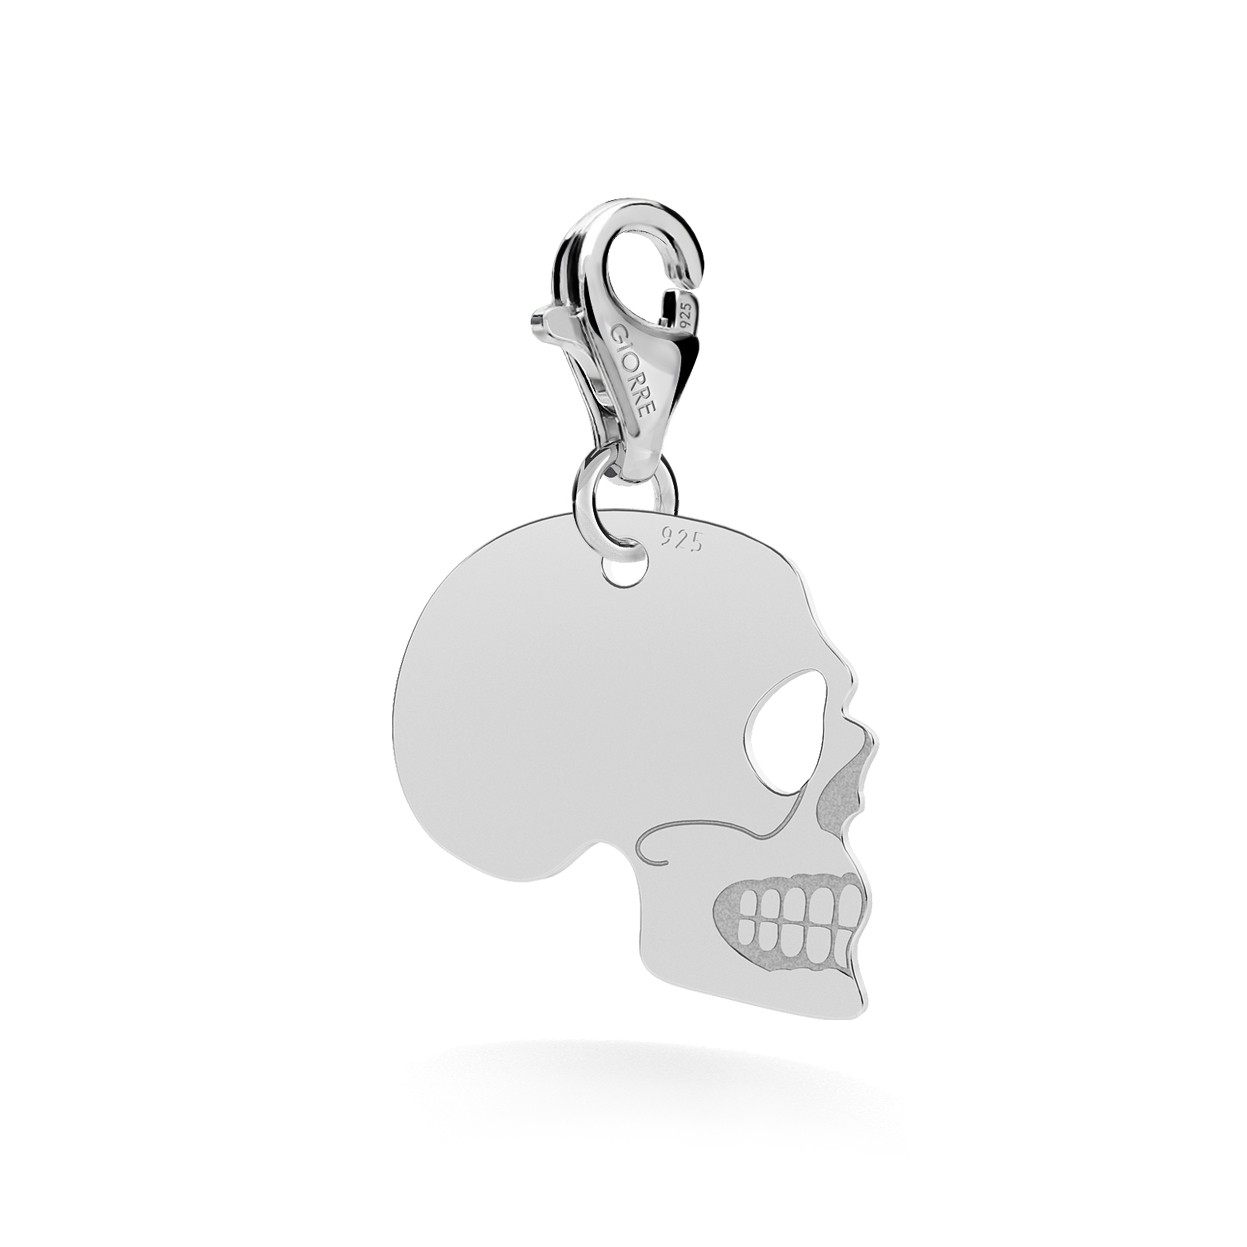 VITAMIN C CHEMICAL FORMULA CHARMS, STERLING SILVER 925